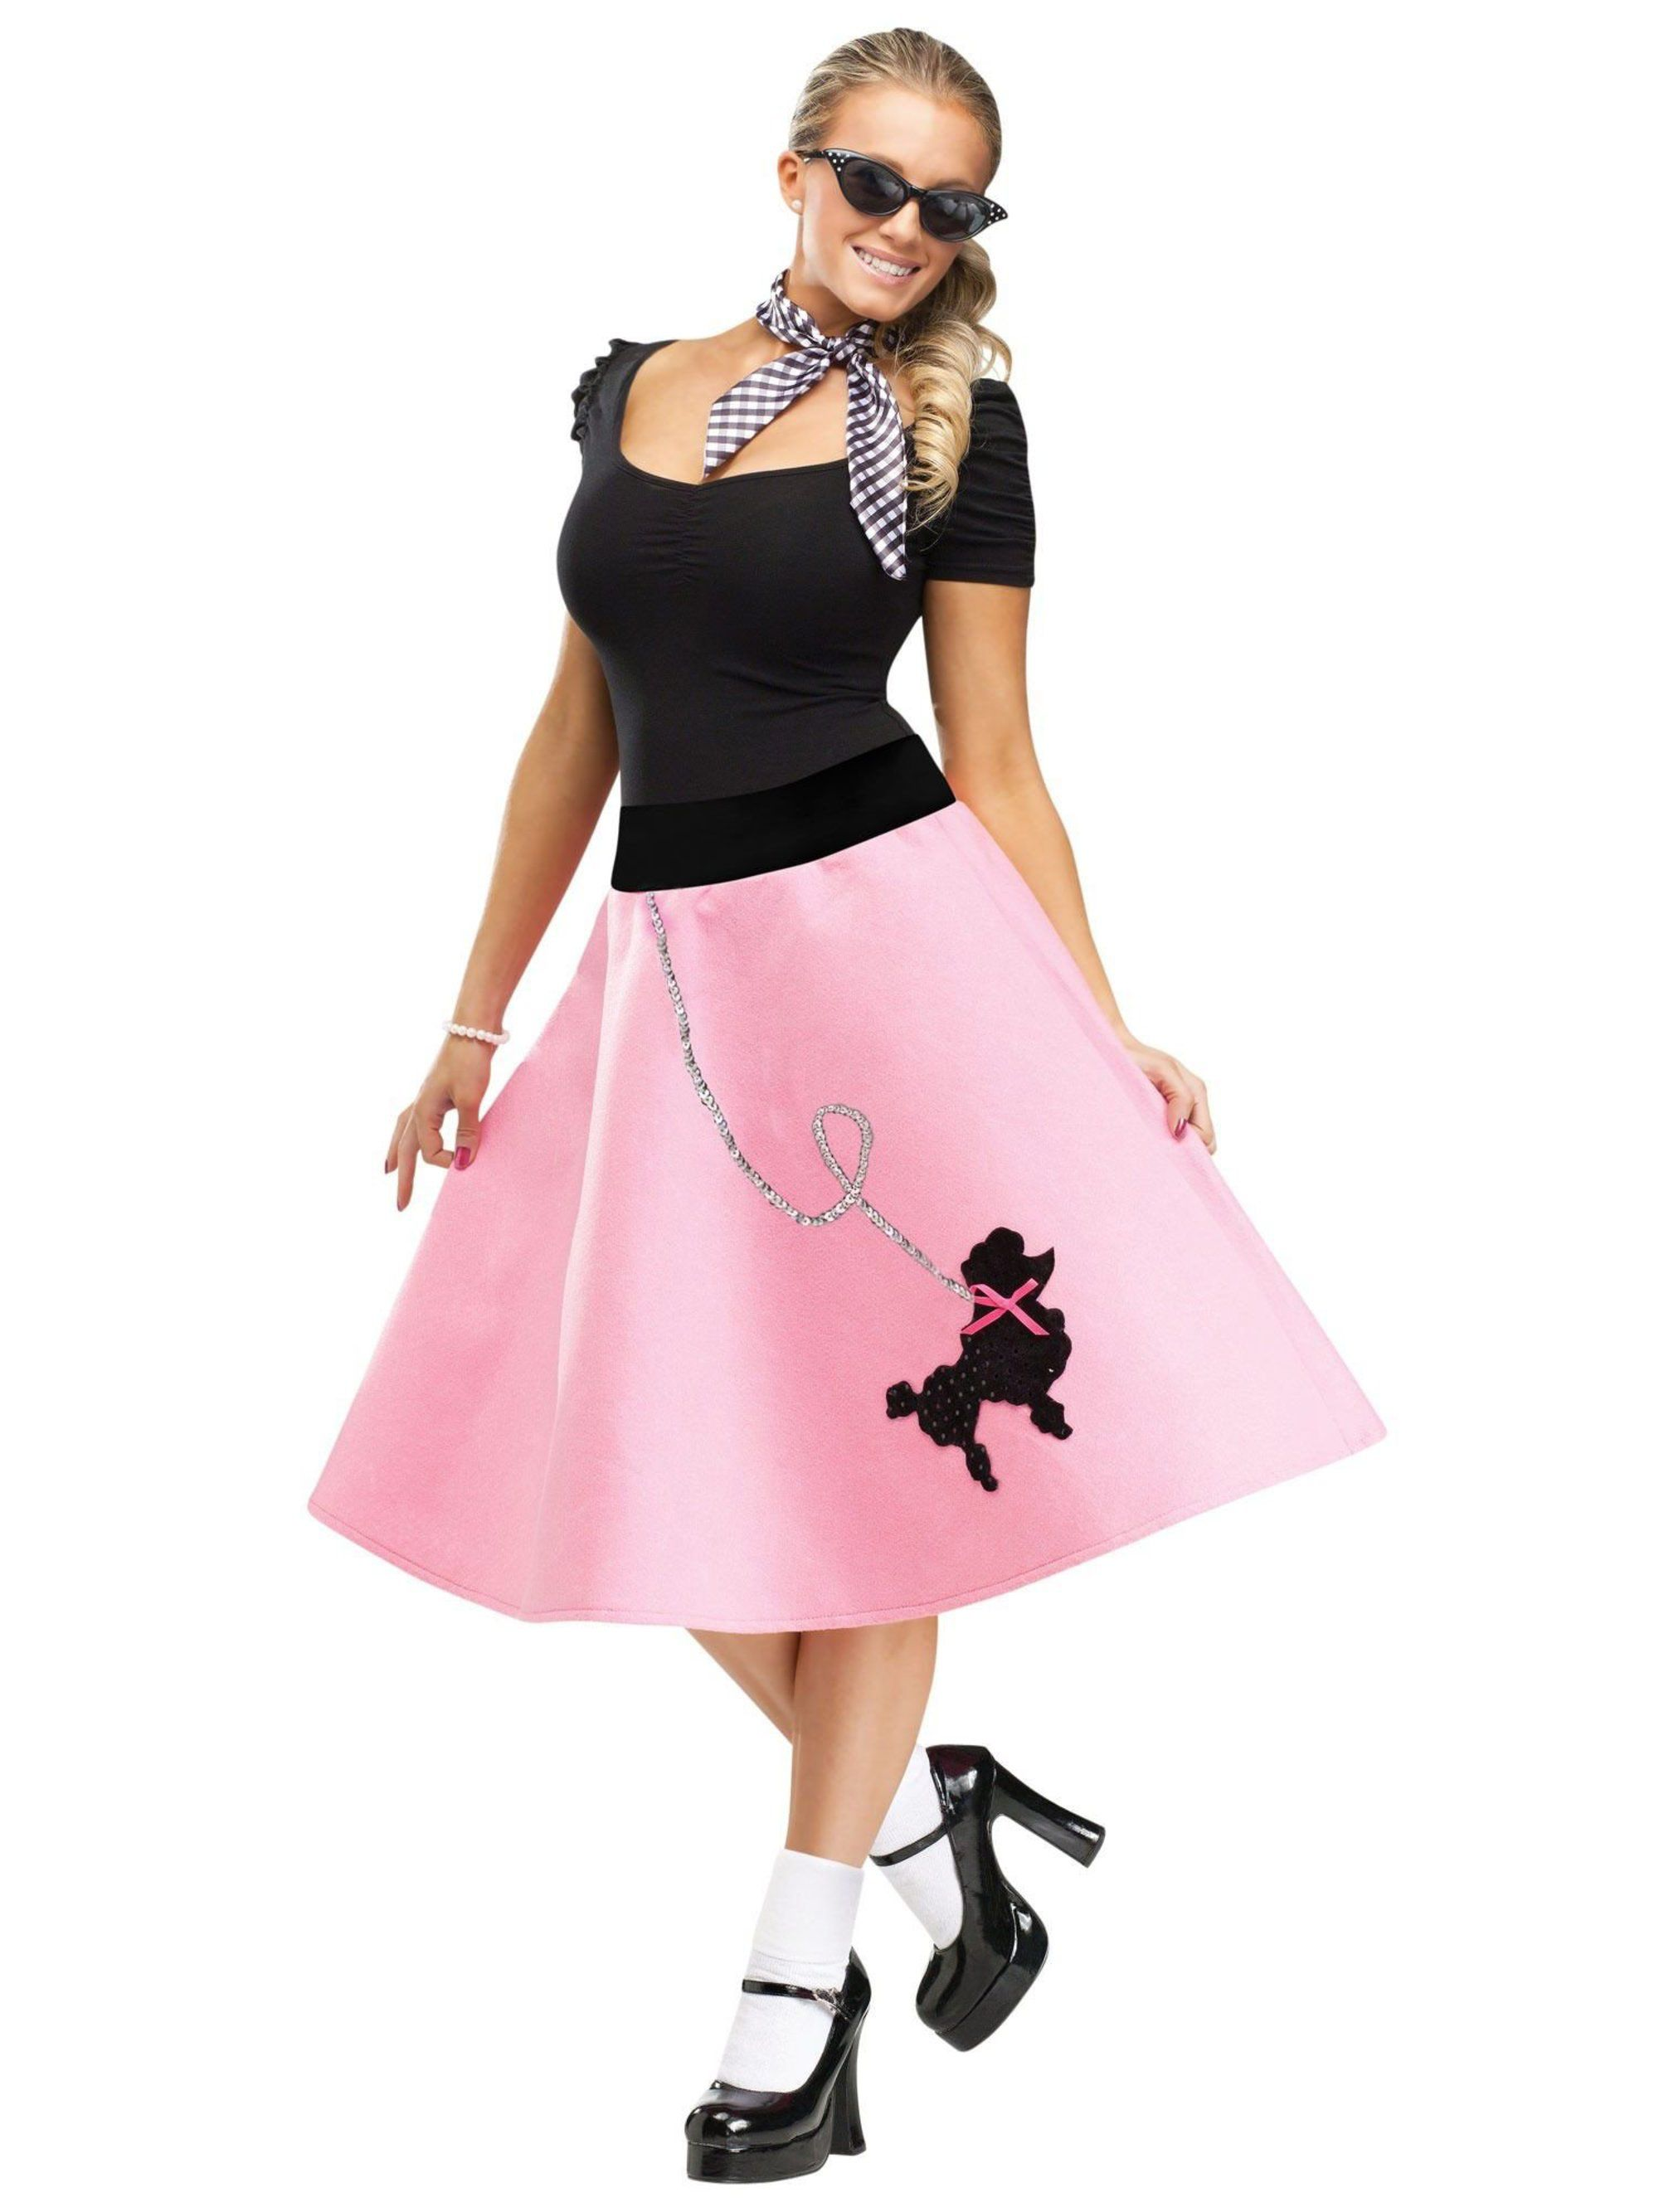 985be98d20271 50s Pink Poodle Skirt Adult. View Larger Image. Larger View of Product;  Larger View of Product ...